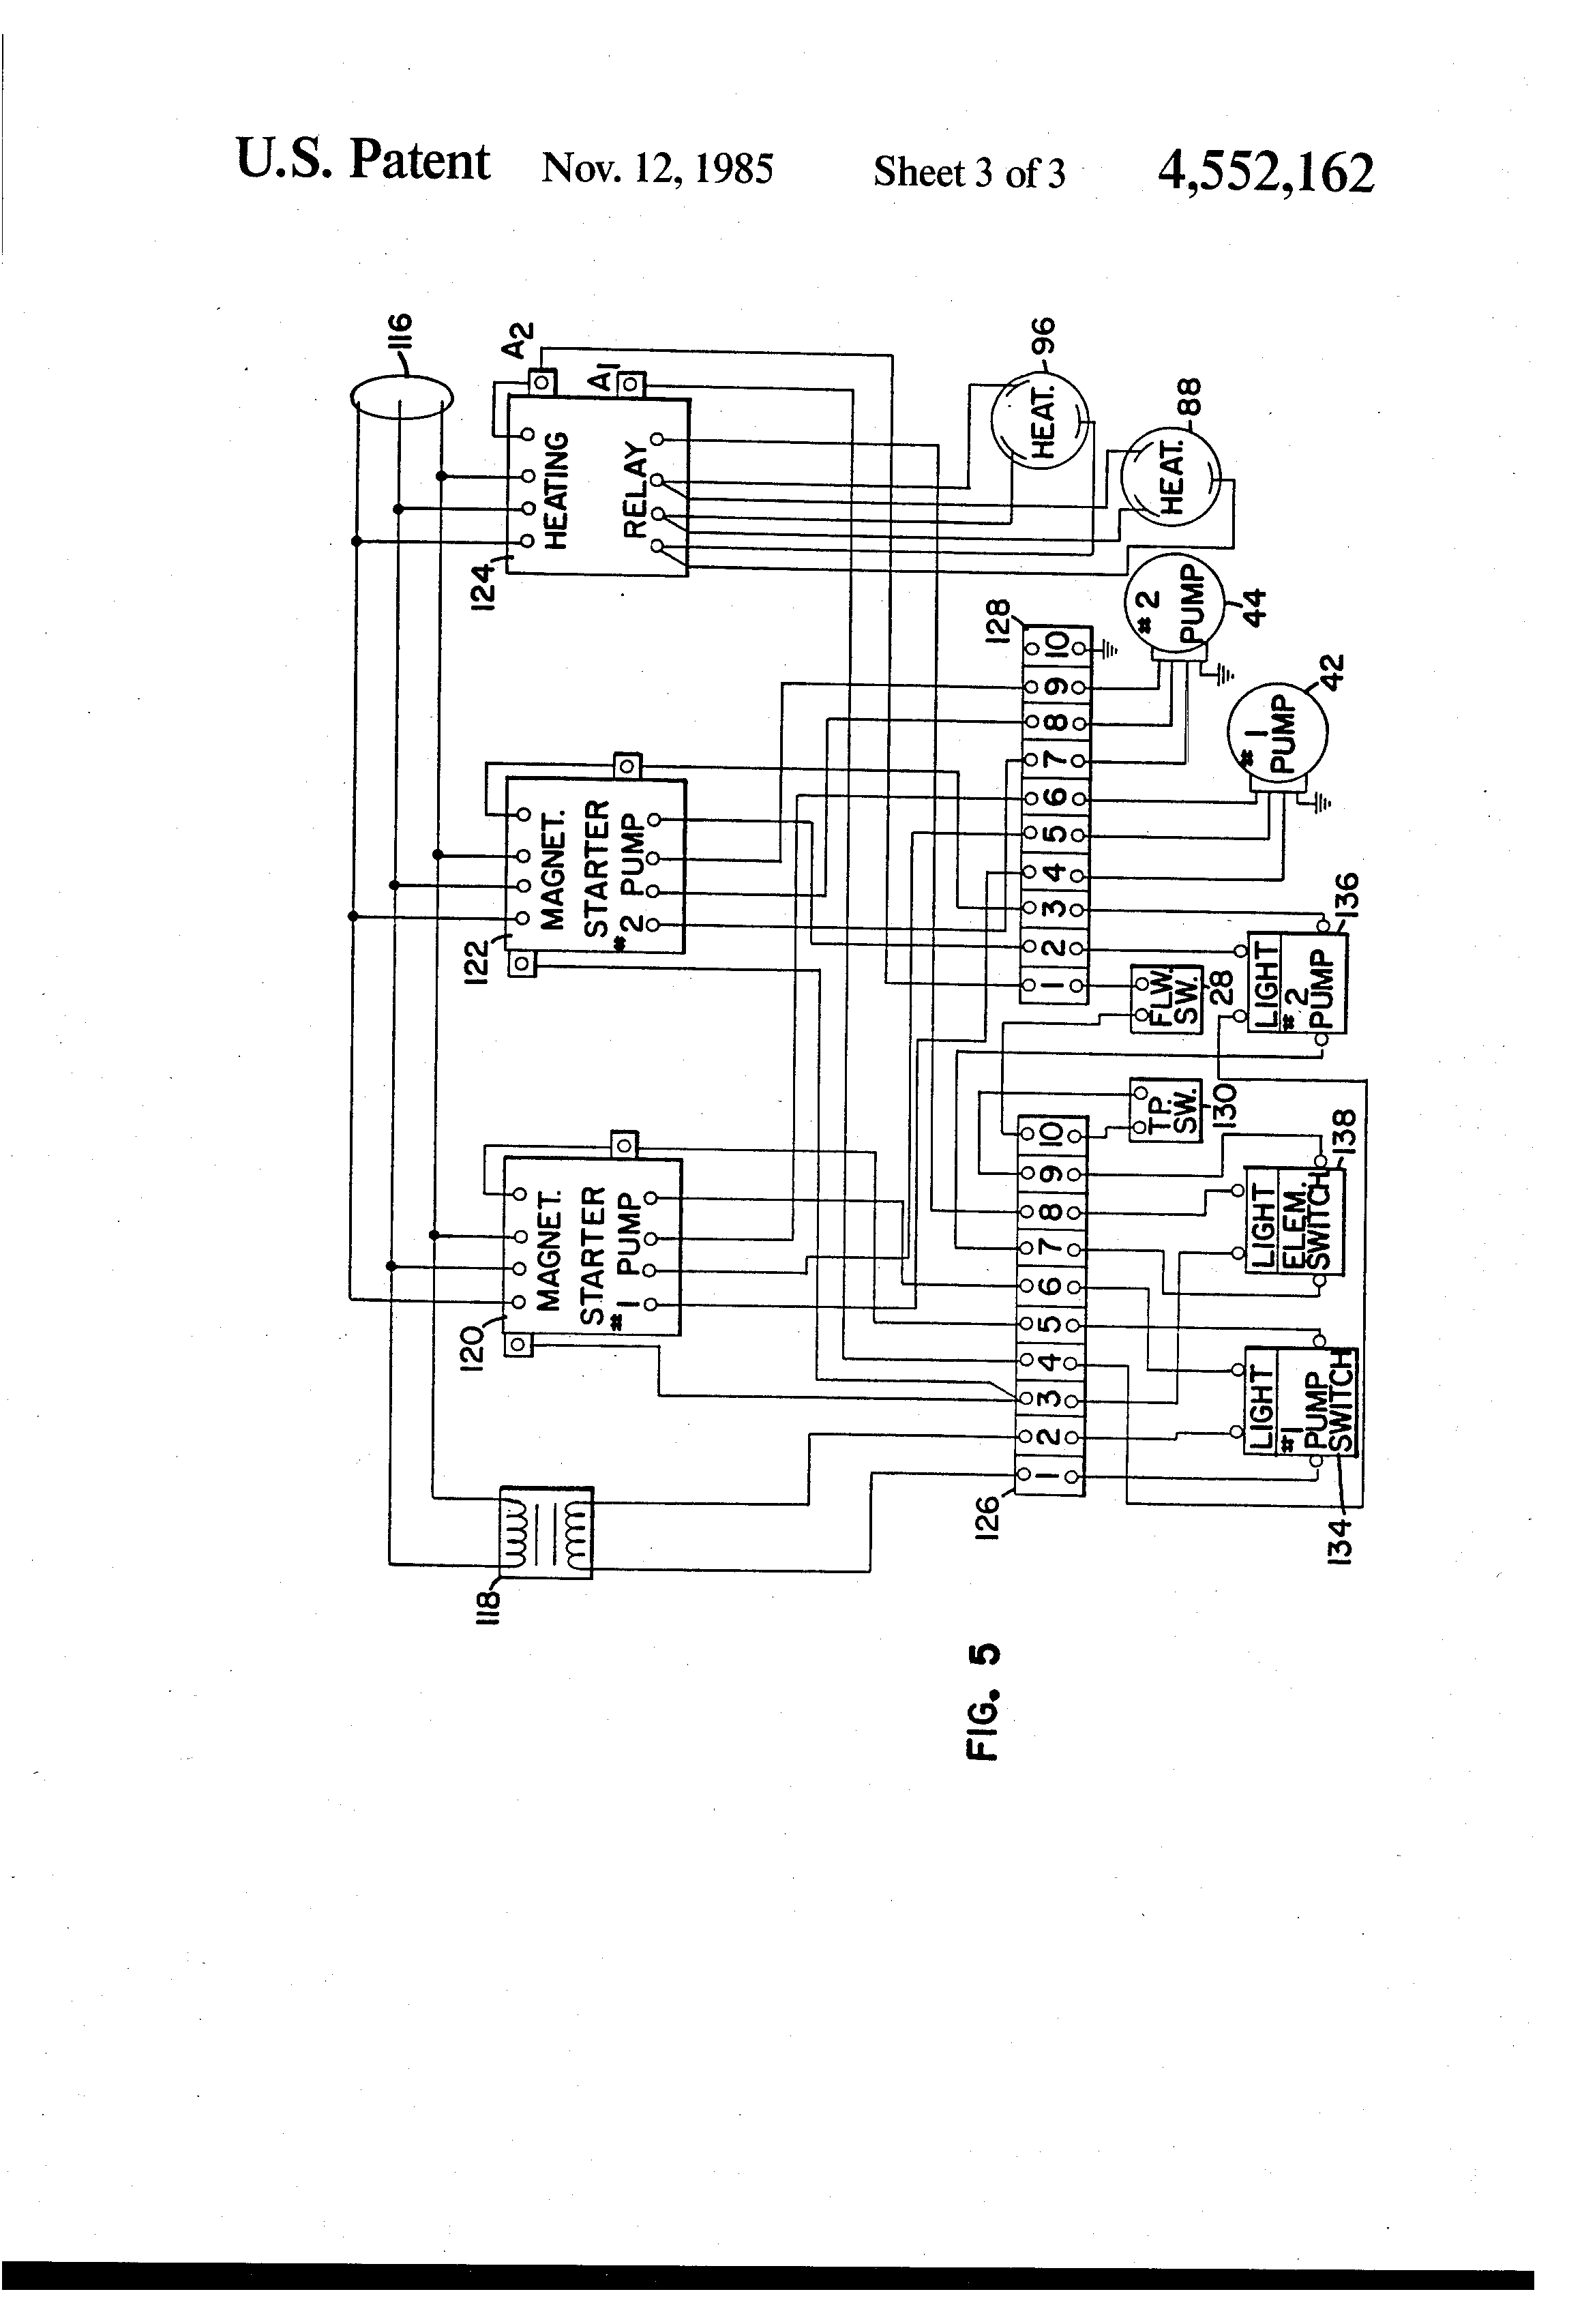 Wiring Diagram For Hotsy Pressure Washer